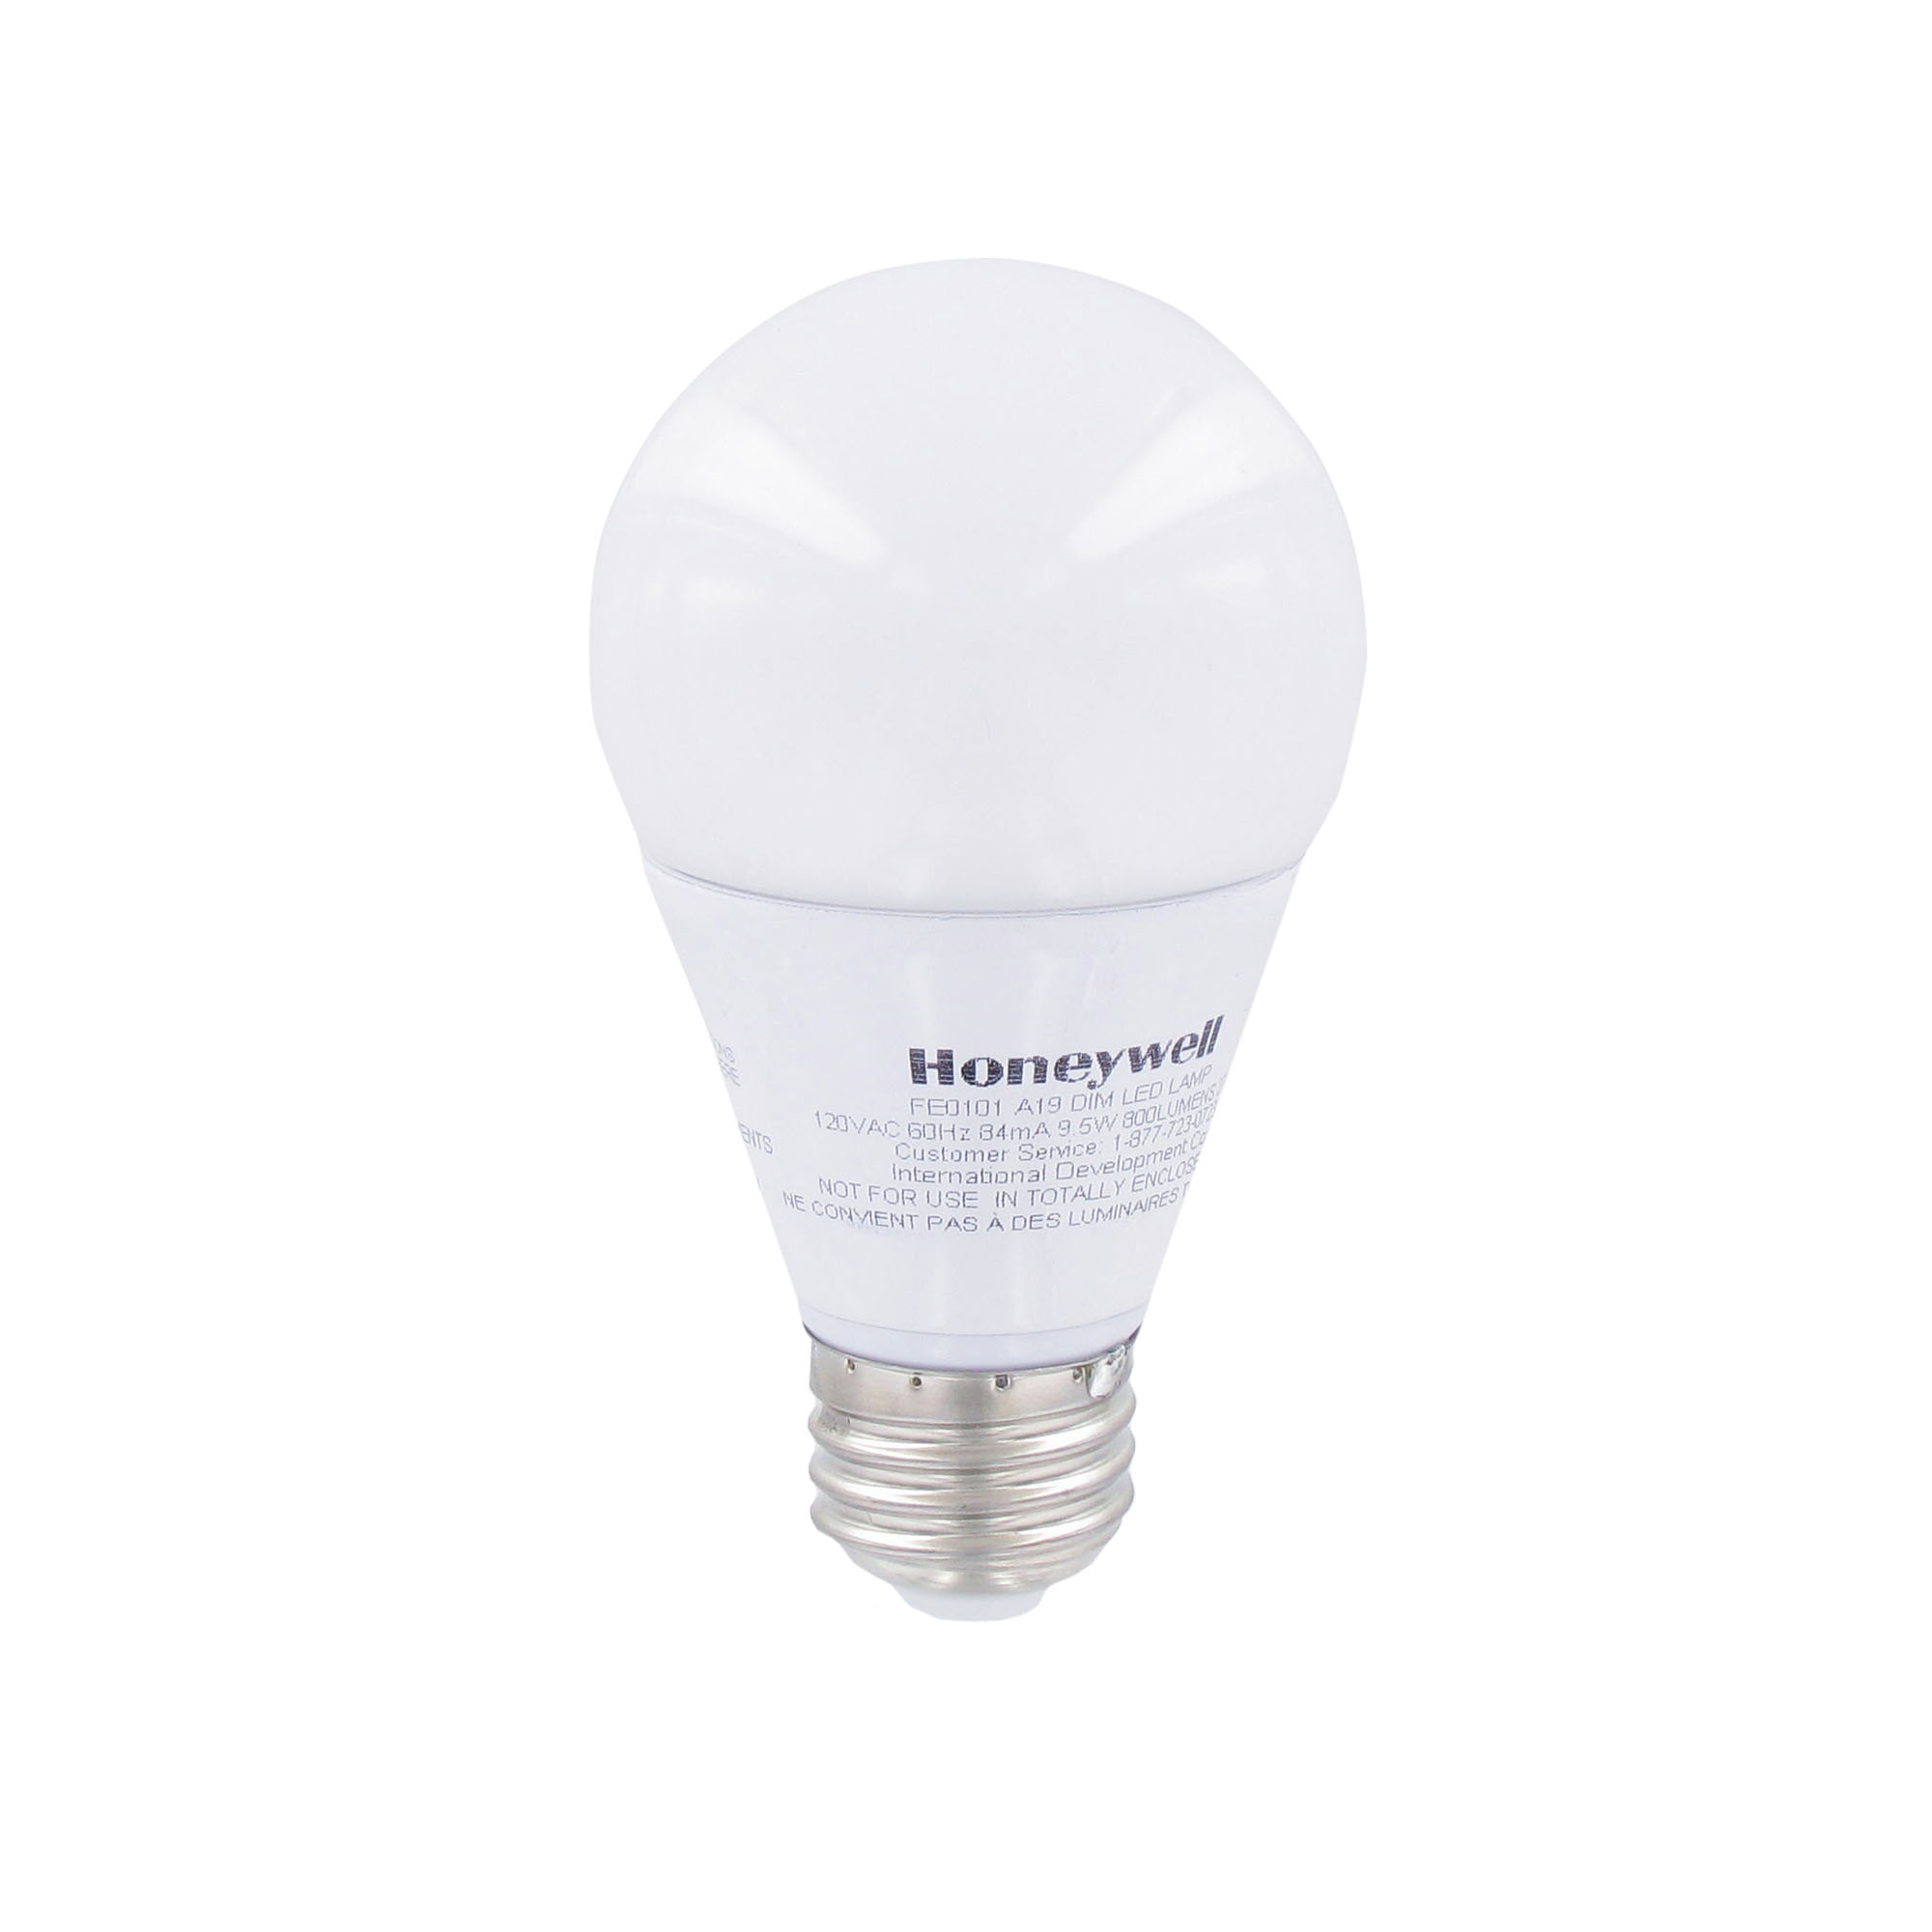 60w Light Bulb Honeywell 60w Equivalent A19 Dimmable Led Light Bulb 3 Pack Fe0101